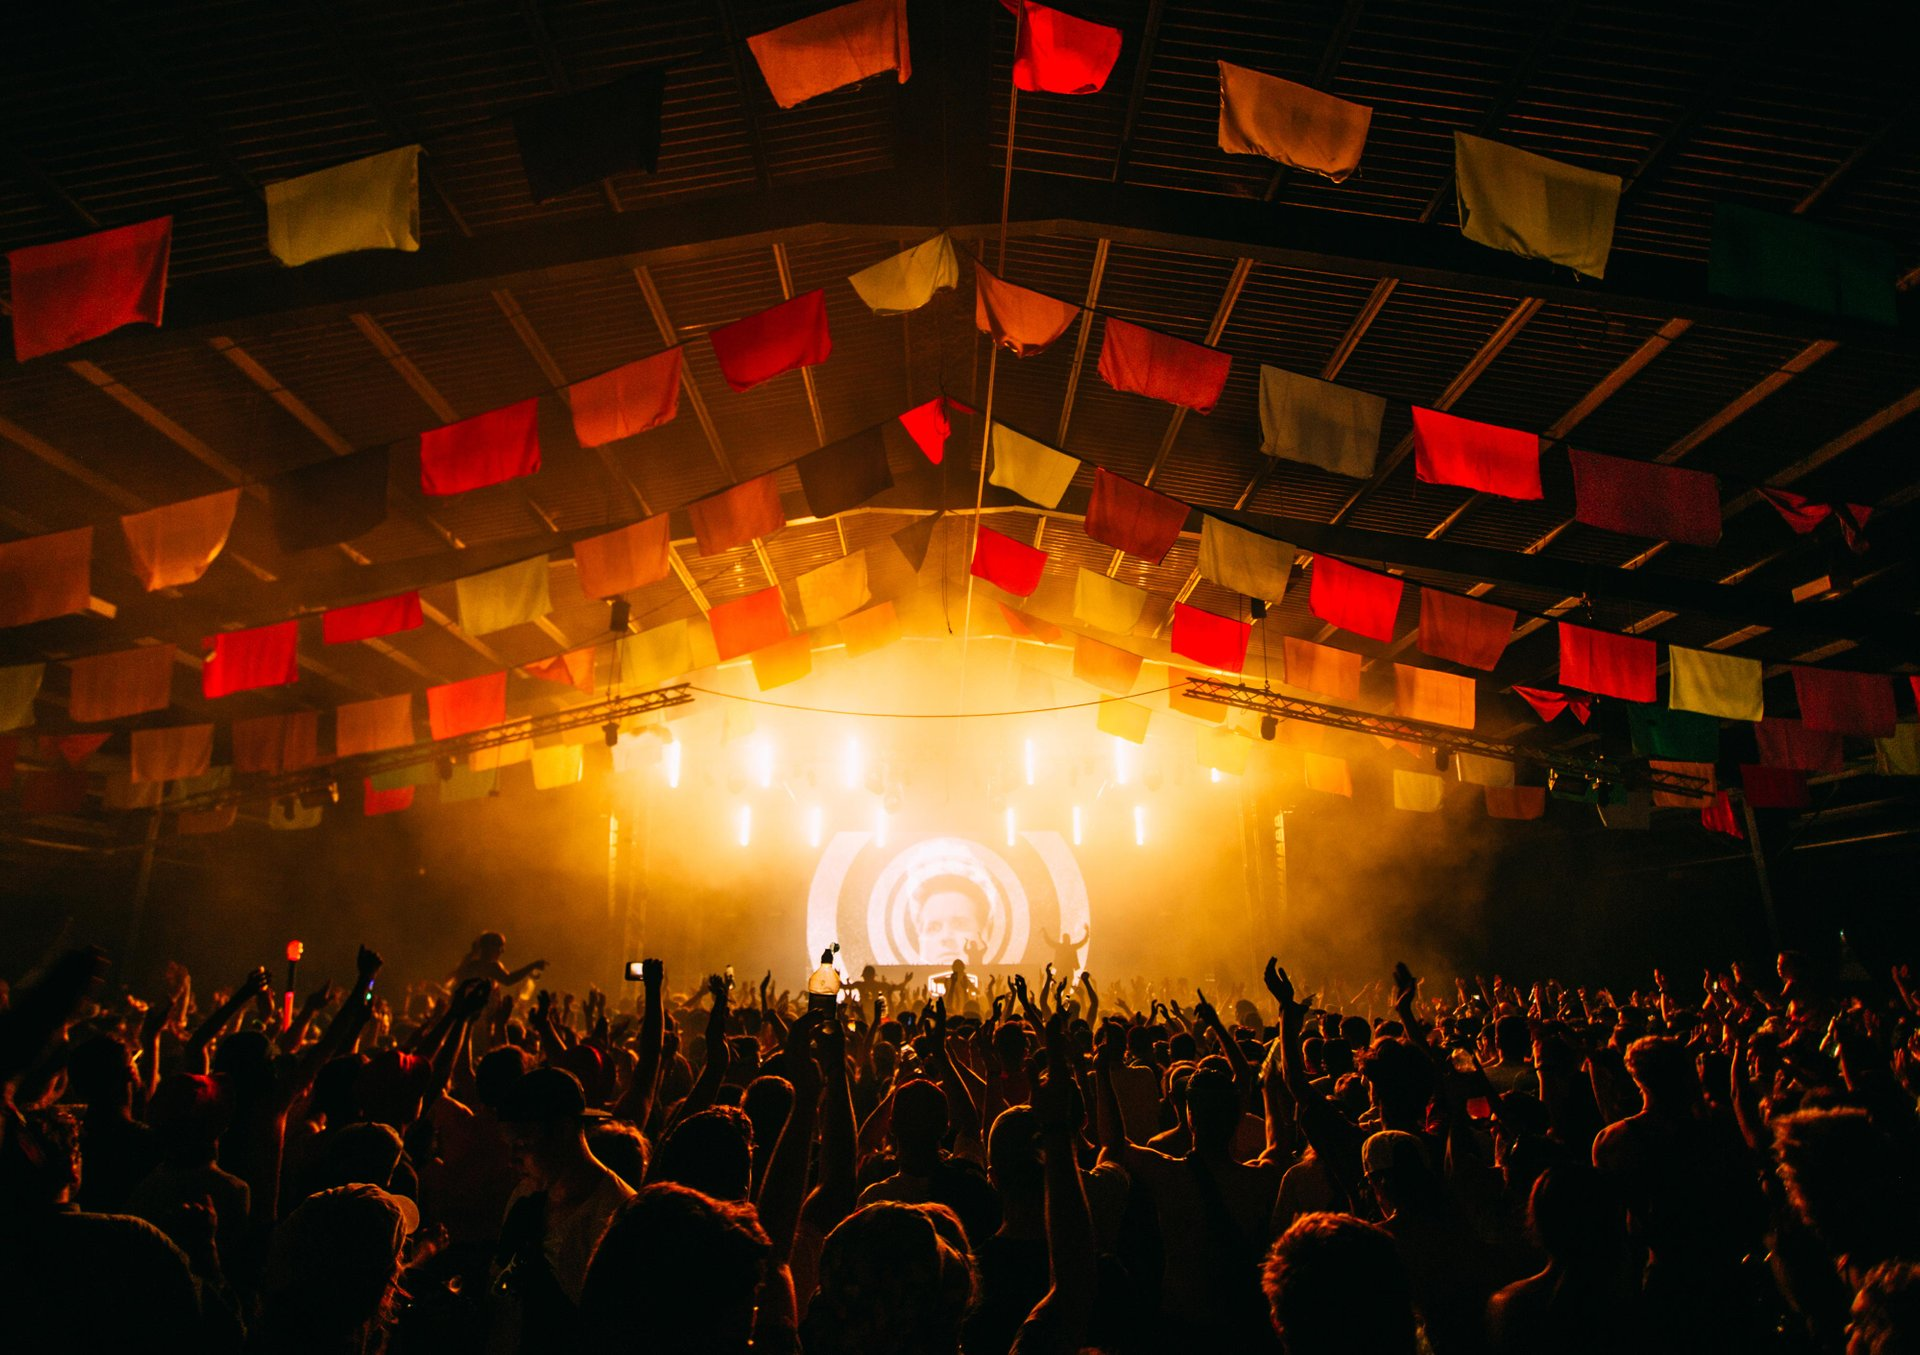 Best time to see NASS Festival in England 2019